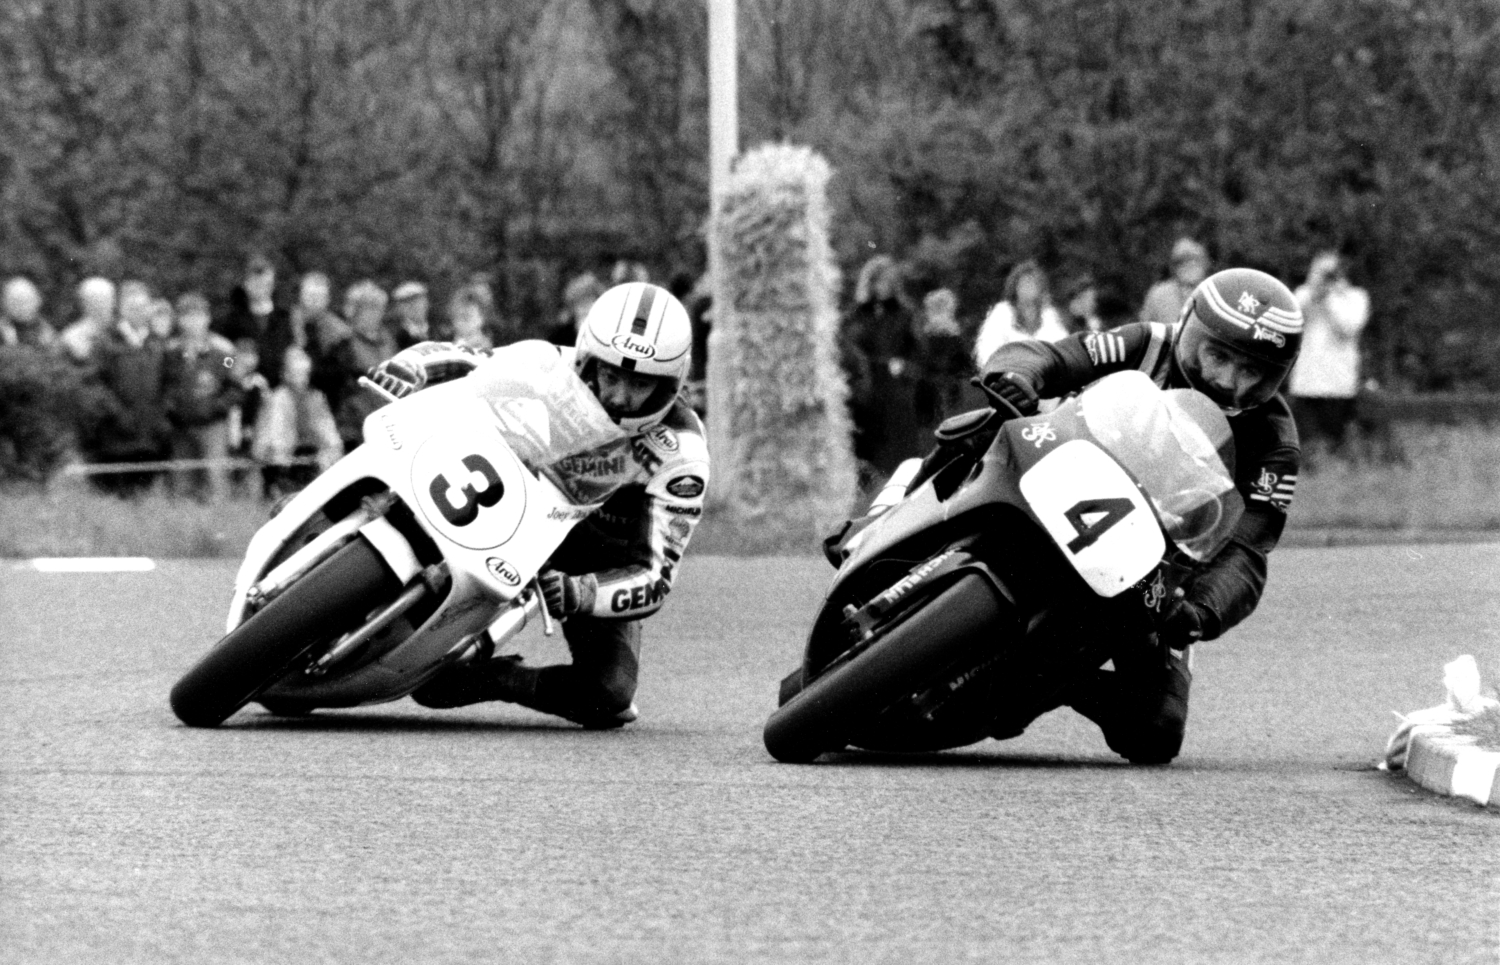 Joey (left) and Robert (right) Dunlop